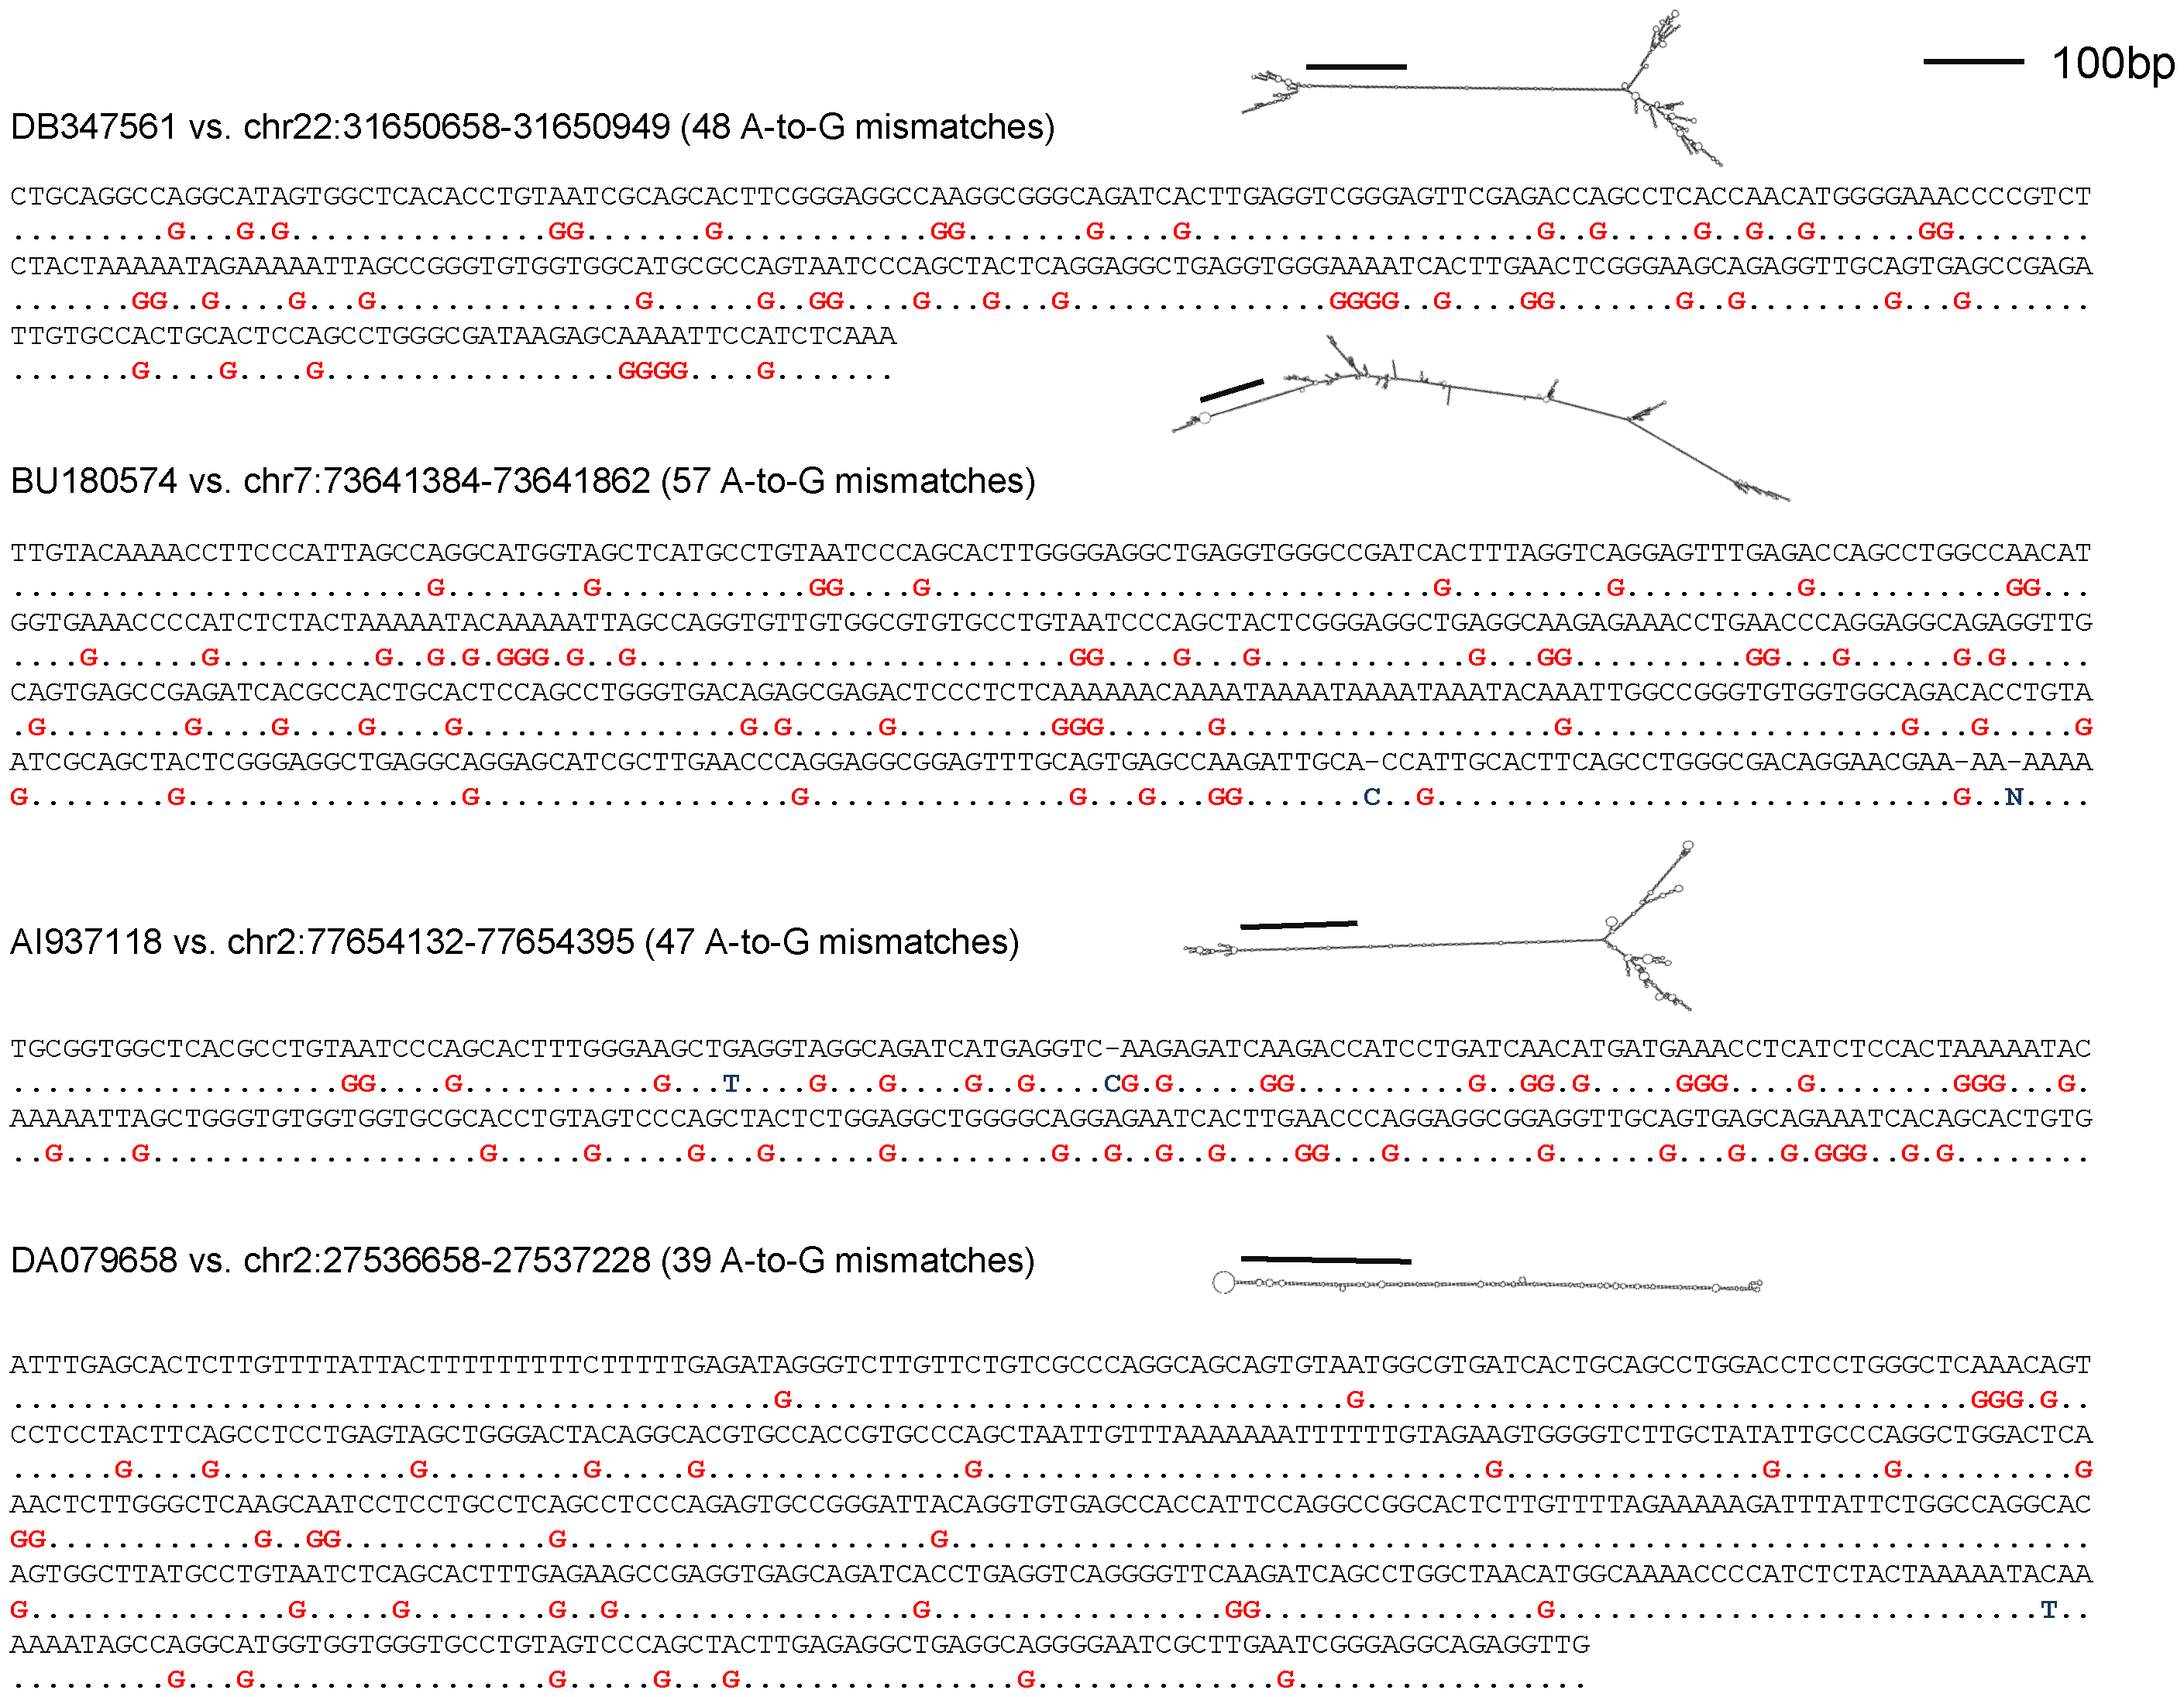 The alignment of typical ultra-edited RNAs to the genome.